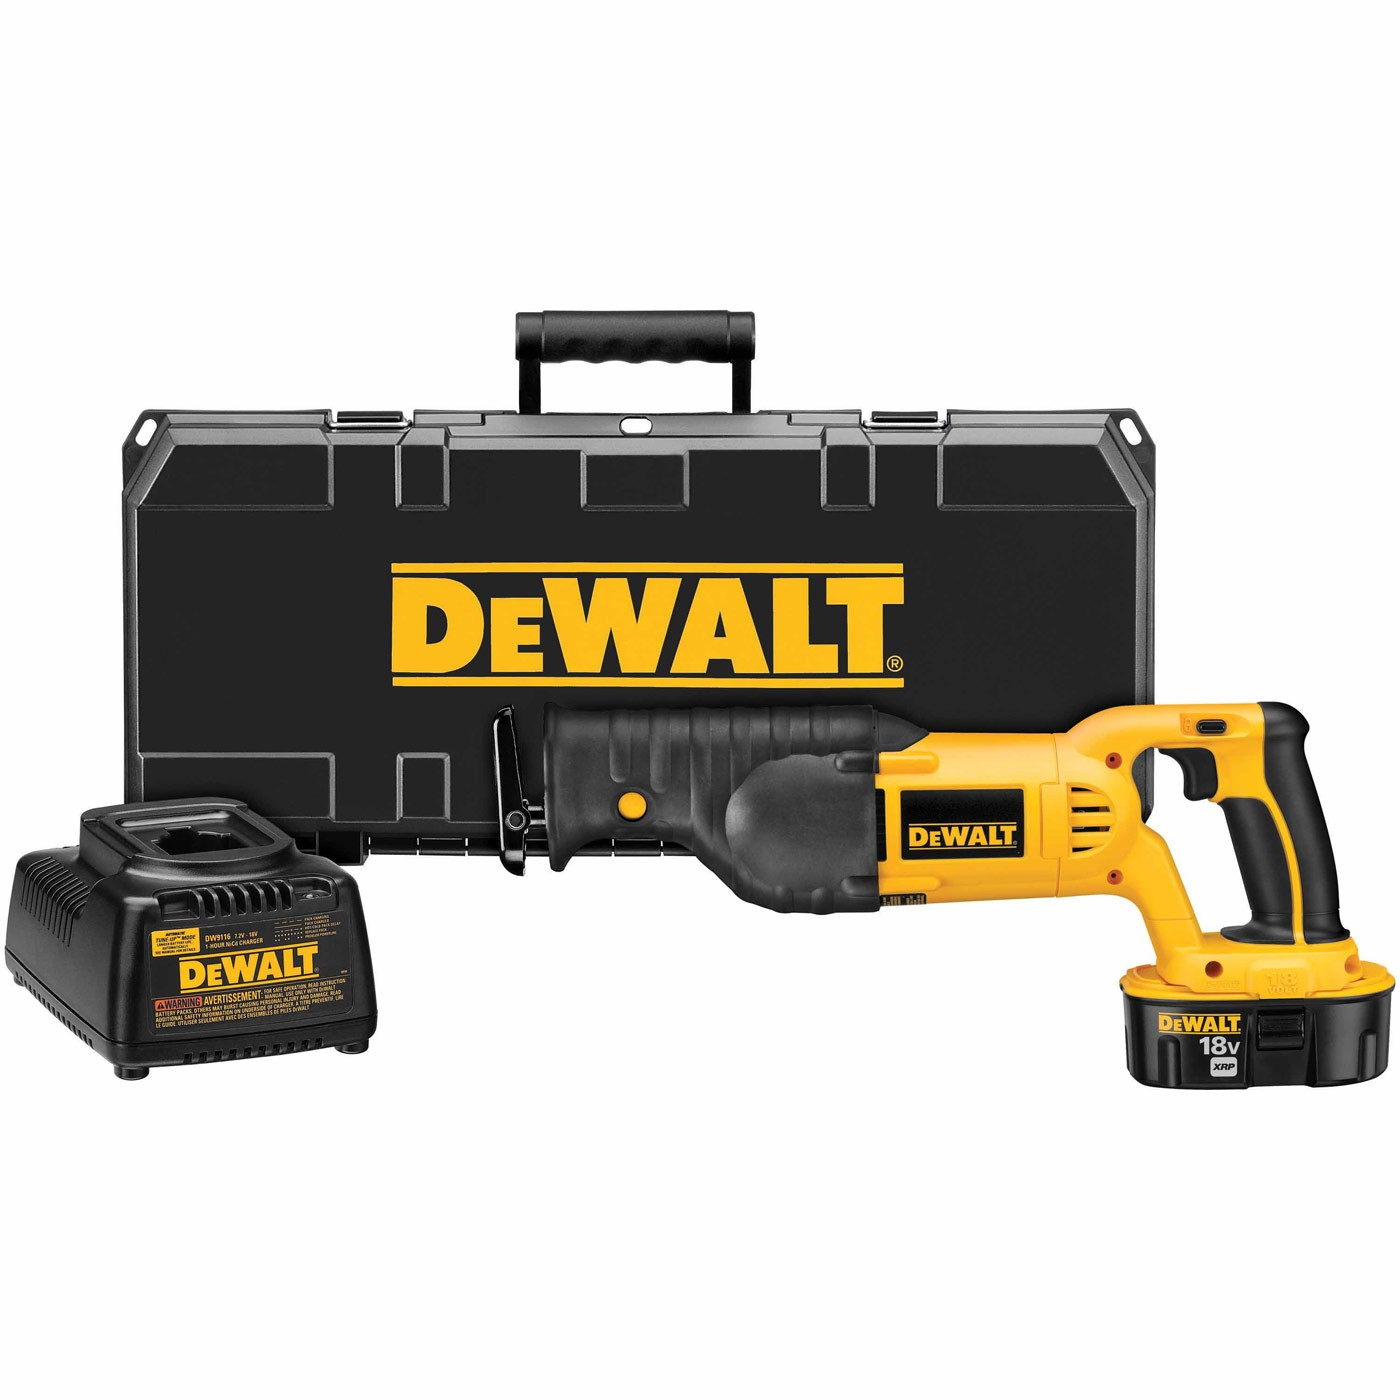 Dewalt dc385k heavy duty 18v cordless reciprocating saw kit greentooth Image collections